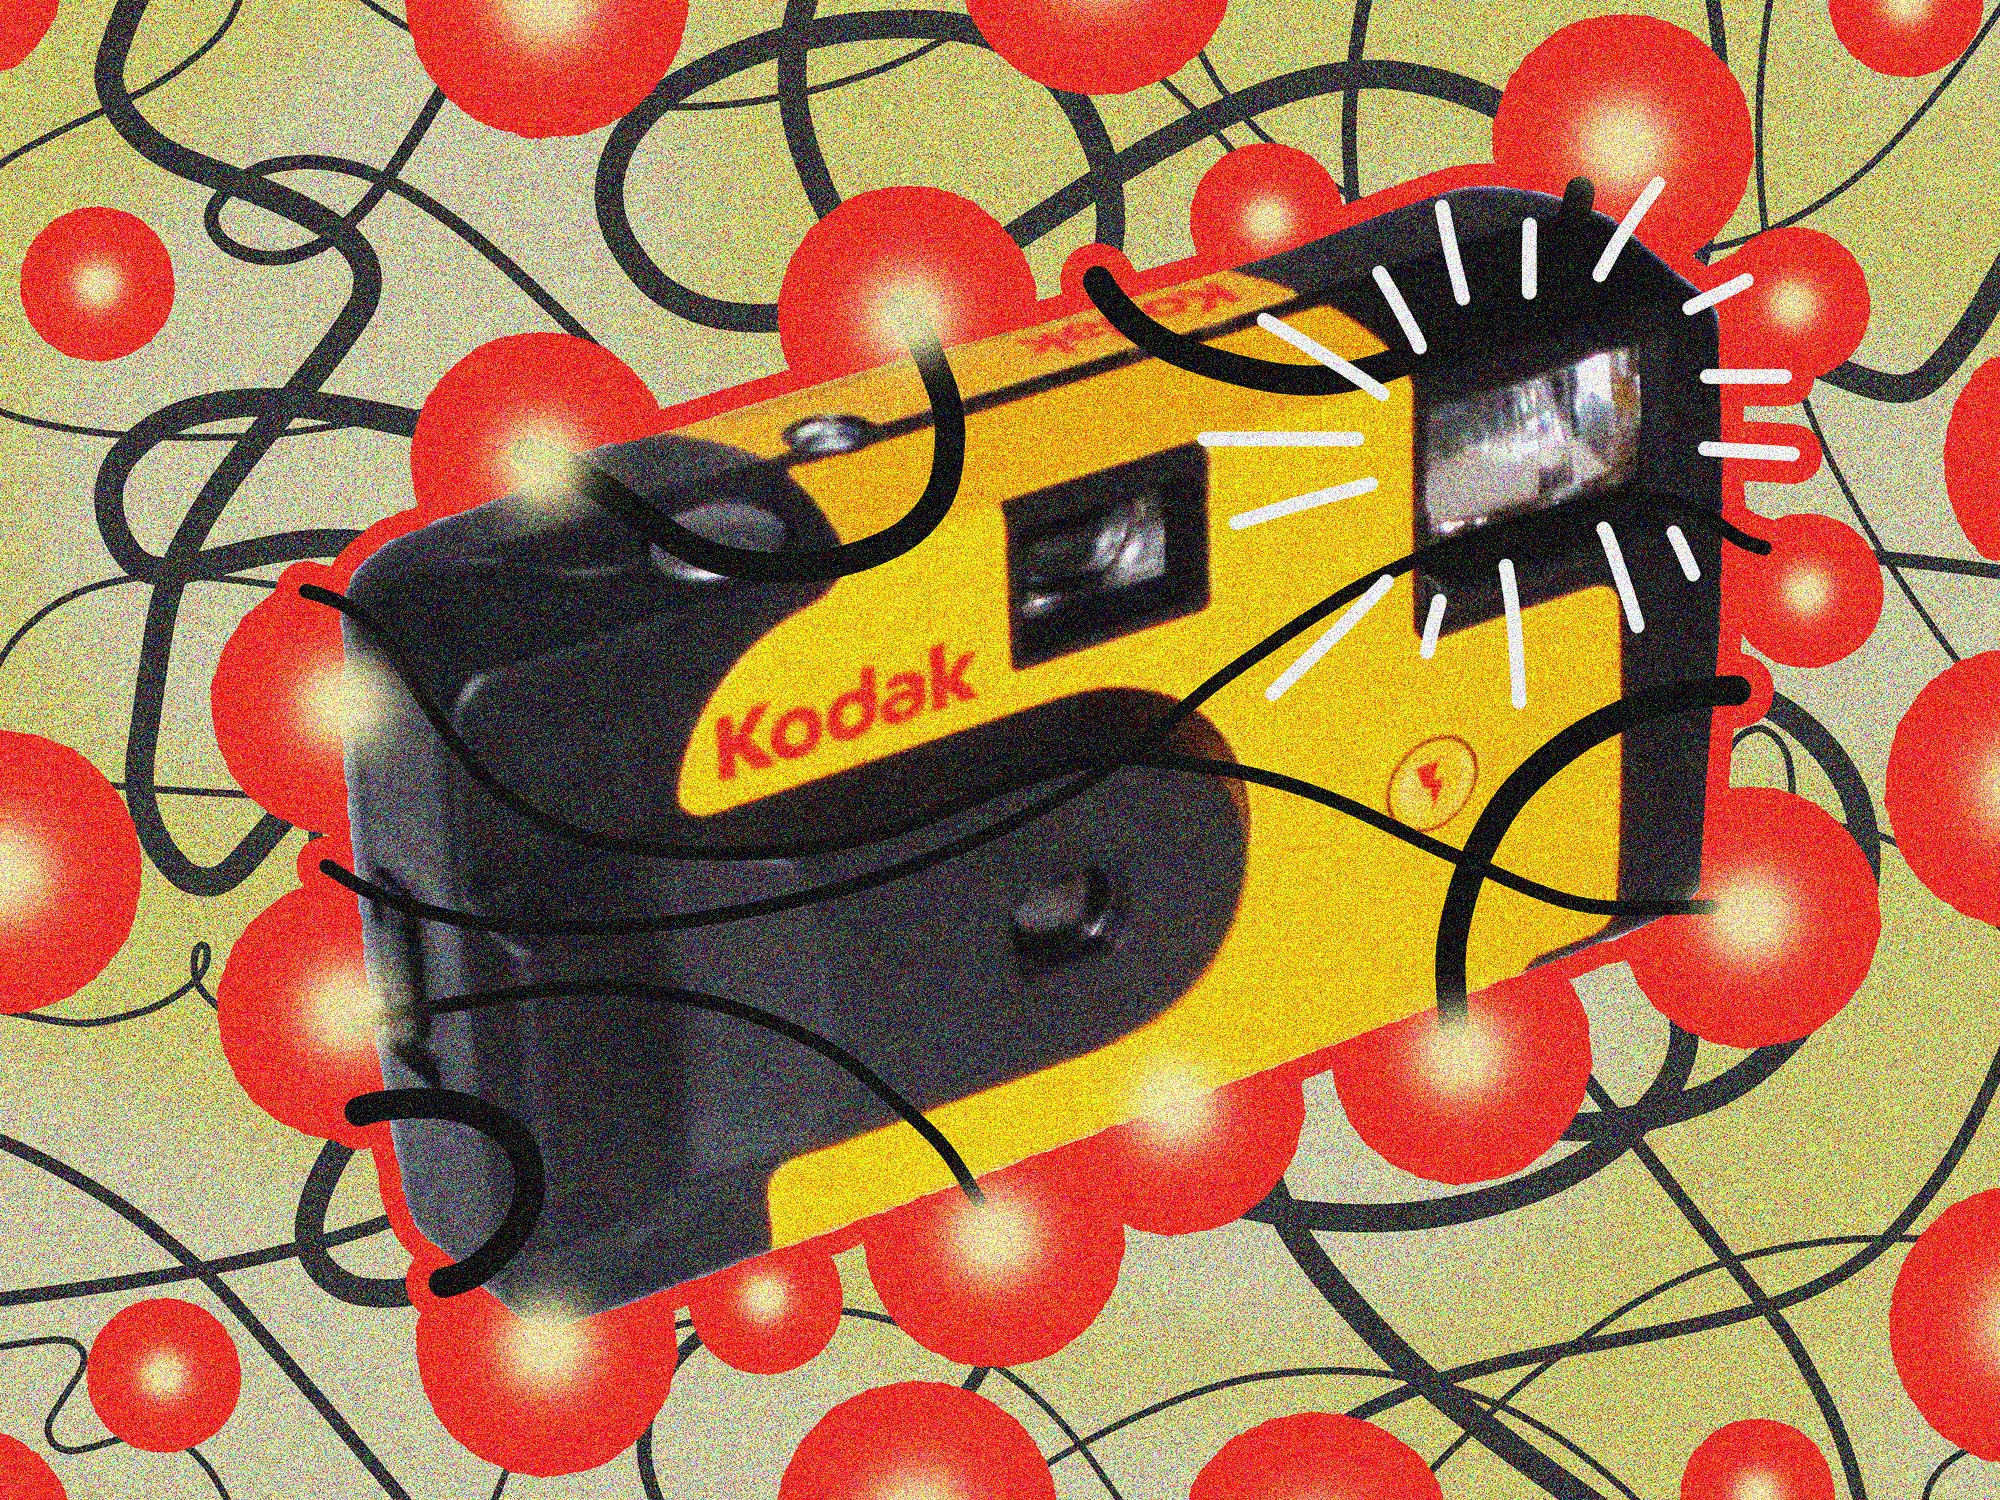 Illustration of a Kodak disposable camera